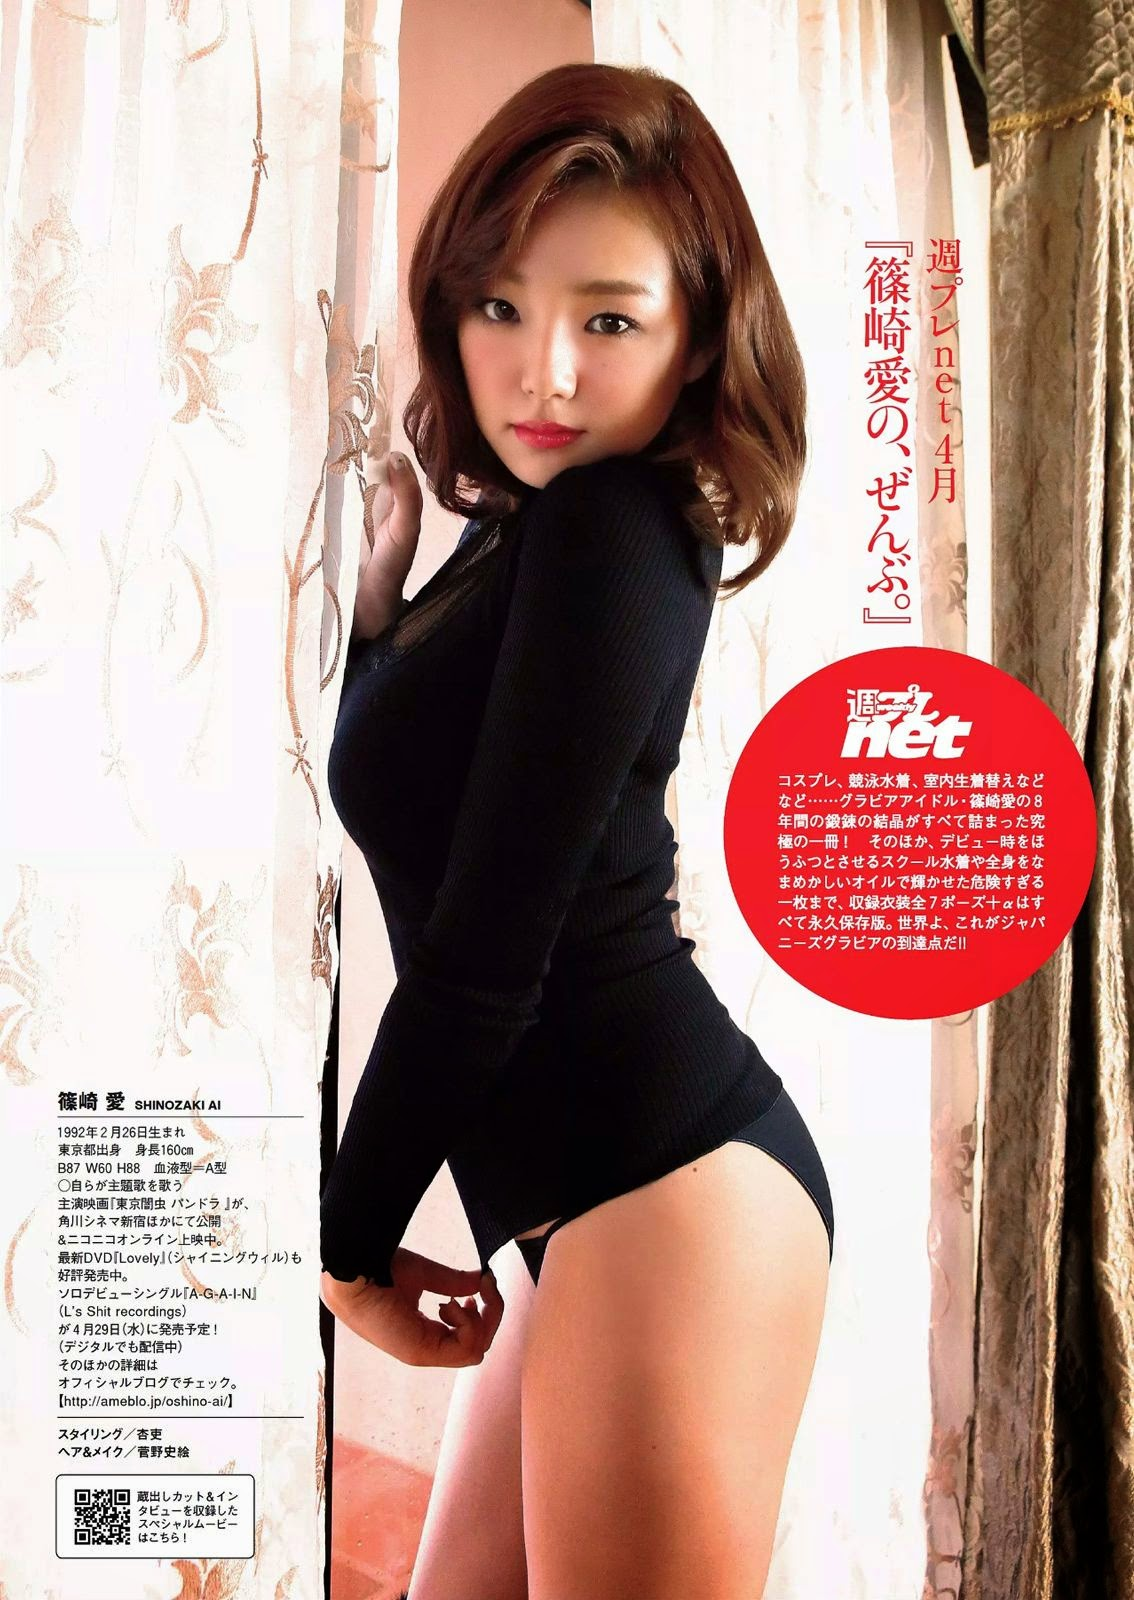 篠崎 愛 Ai Shinozaki Weekly Playboy No 19-20 2015 Photos 4